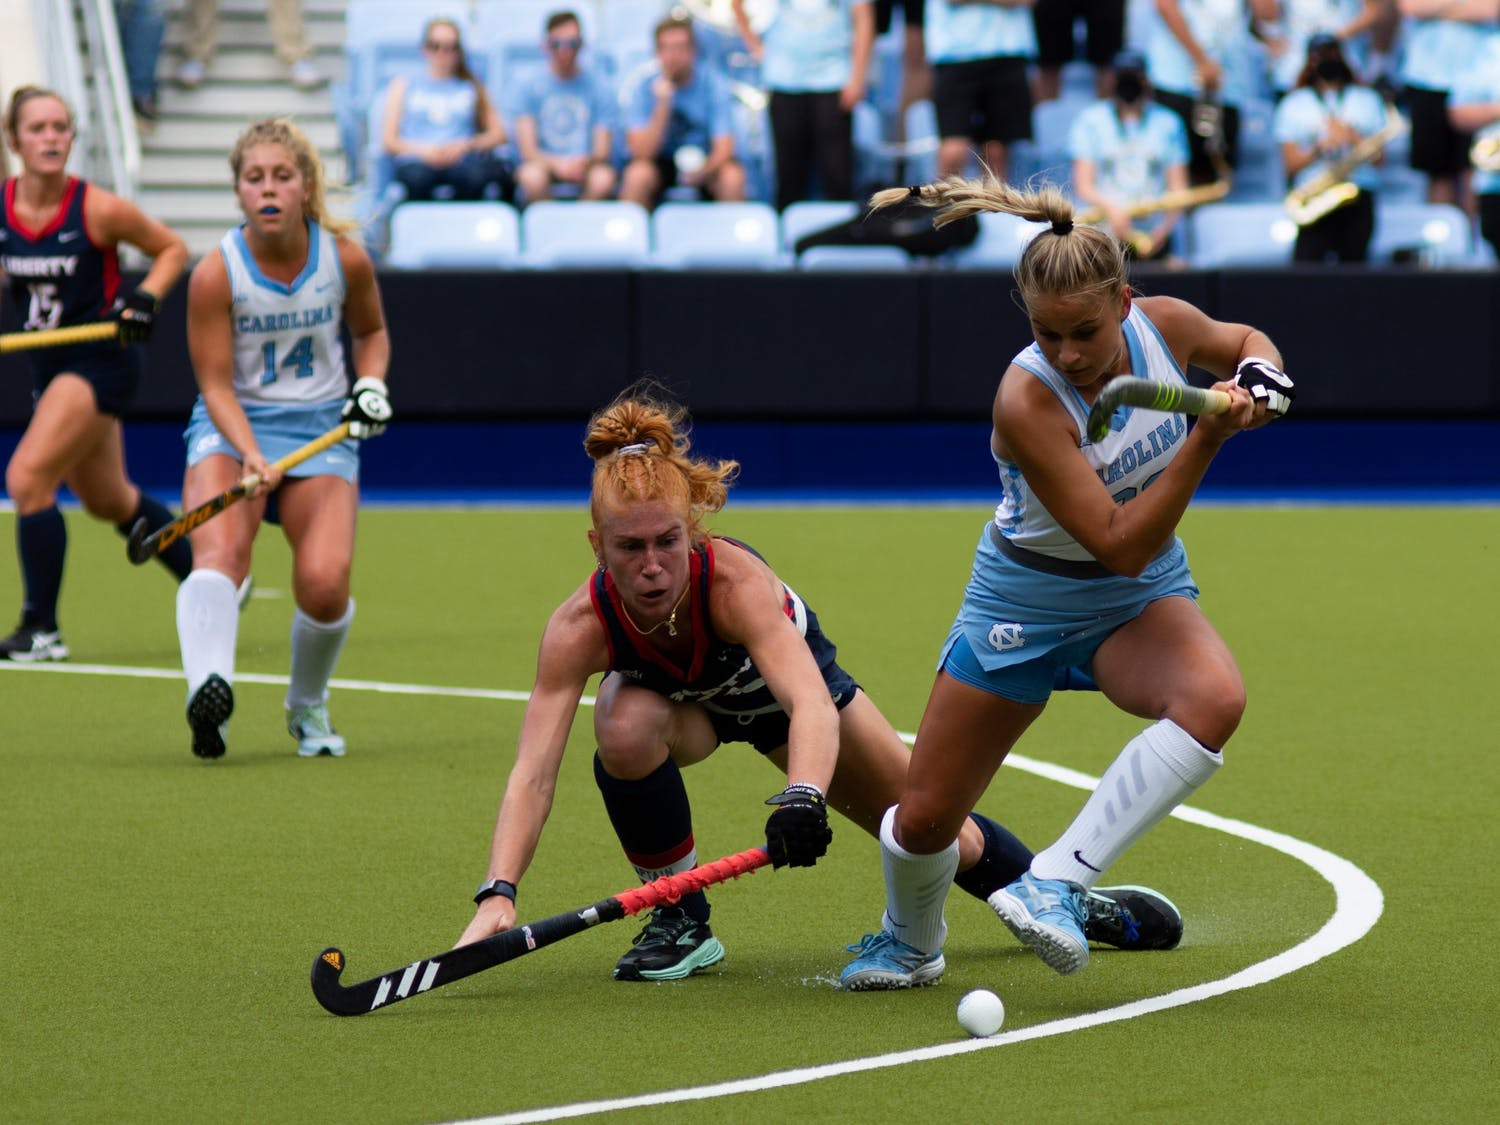 Freshman midfielder Jasmina Smolenaars (22) retains possession of the ball during UNC's Oct. 10 field hockey game against Liberty. The game proved to be a loss for the Tar Heels–Liberty headed home with a 4-0 win.